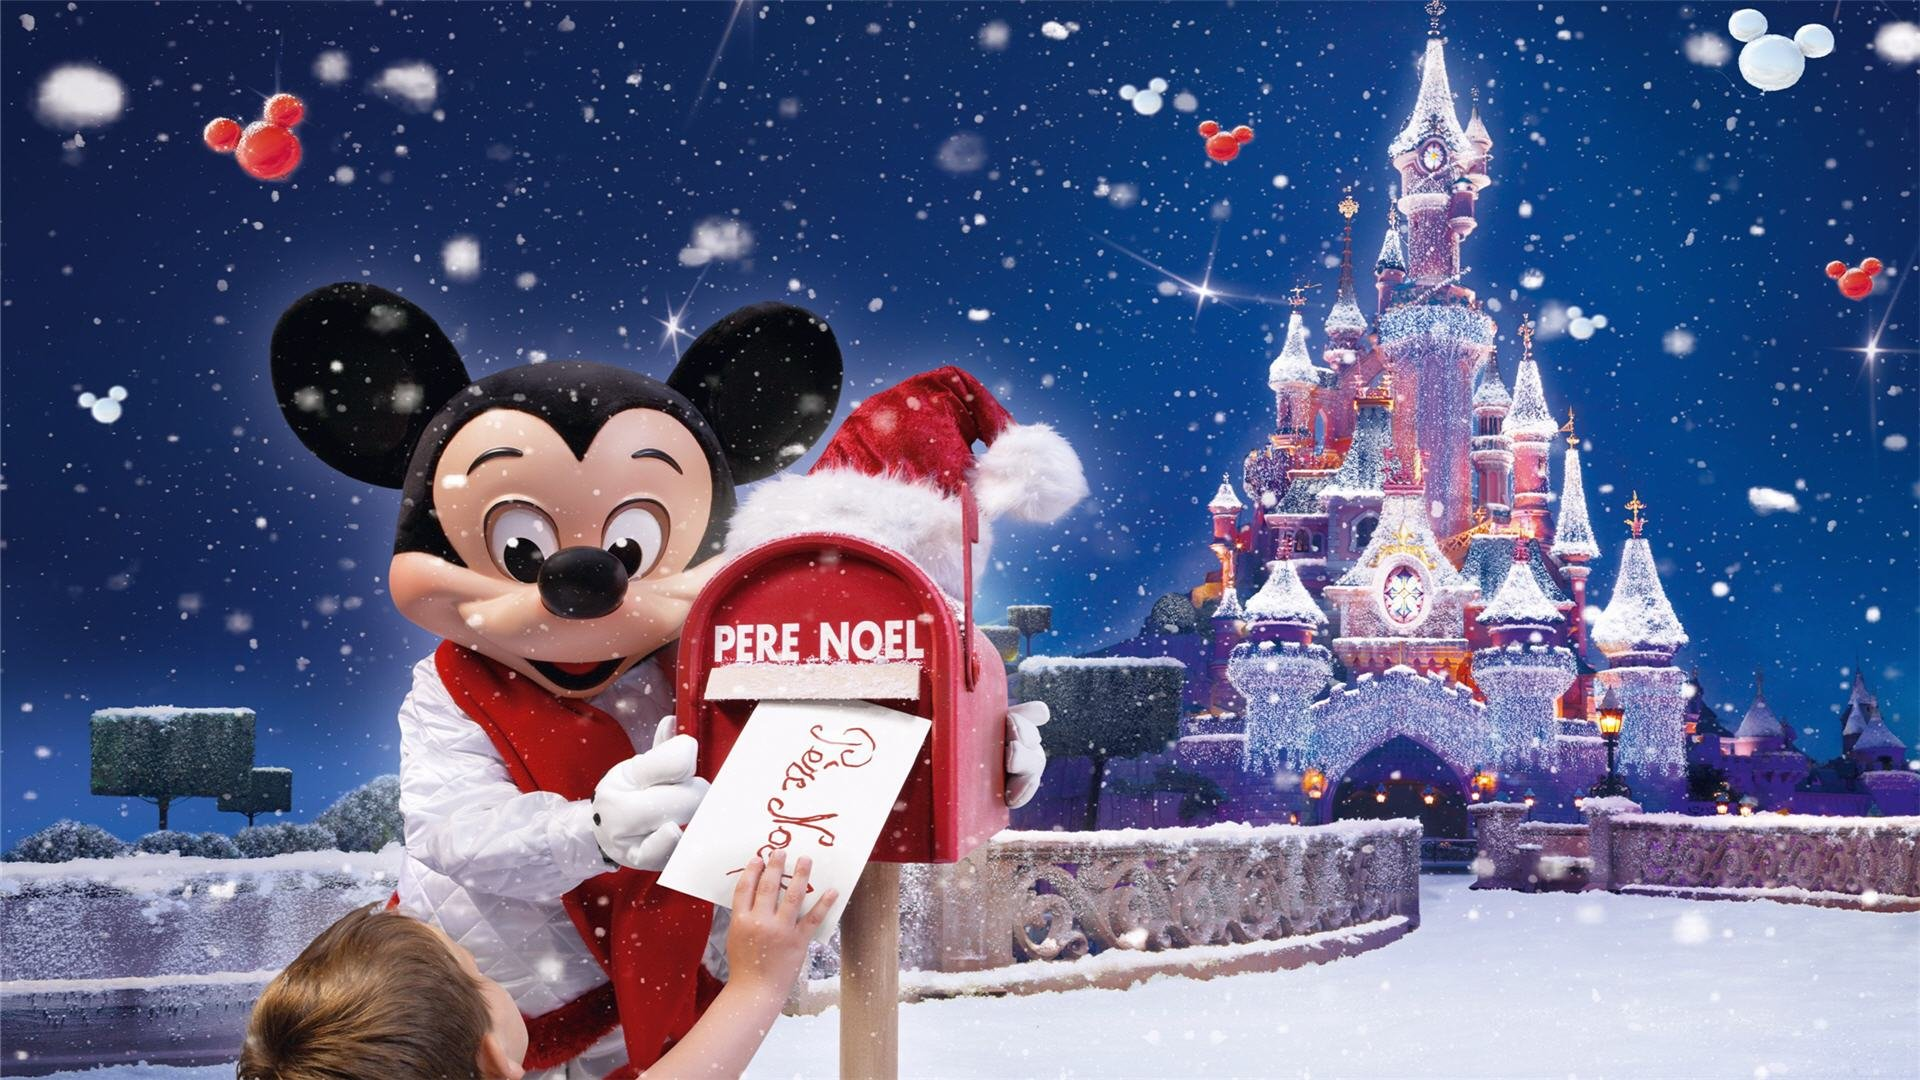 Disneyland Paris Christmas Wallpaper Wallpaper Wiki